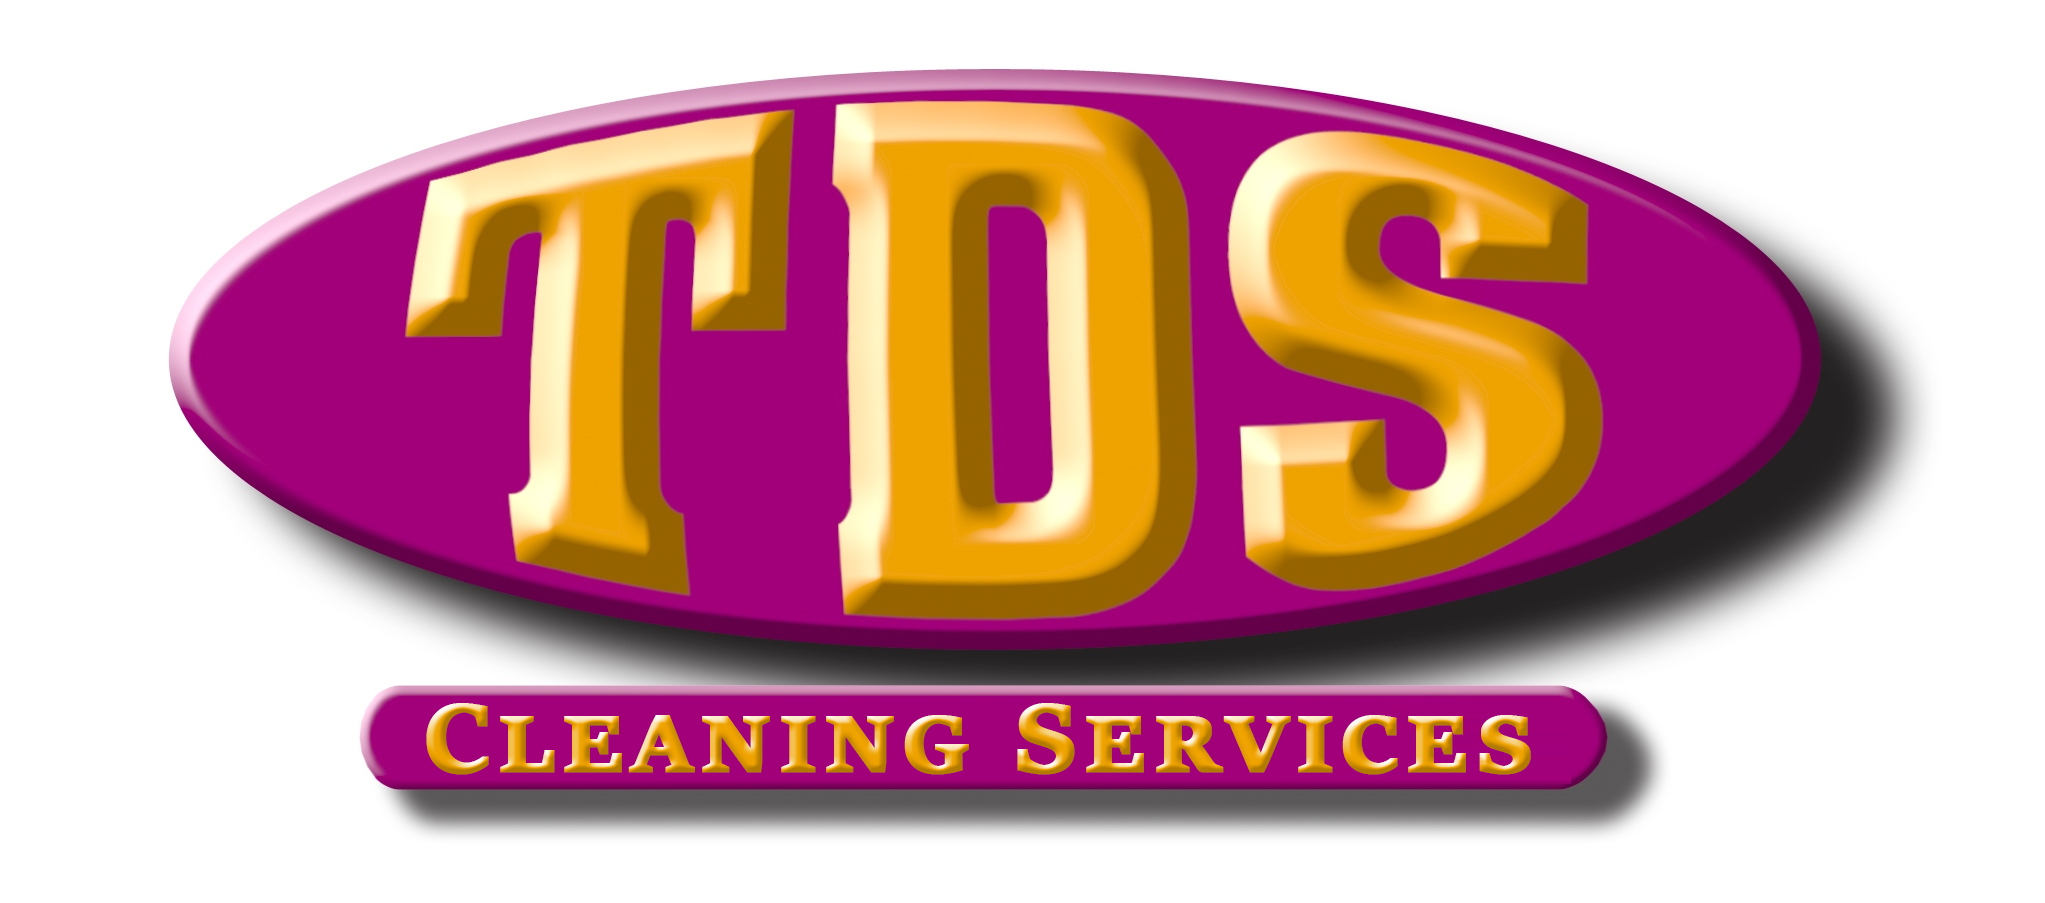 wetherby-cleaning-services.co.uk